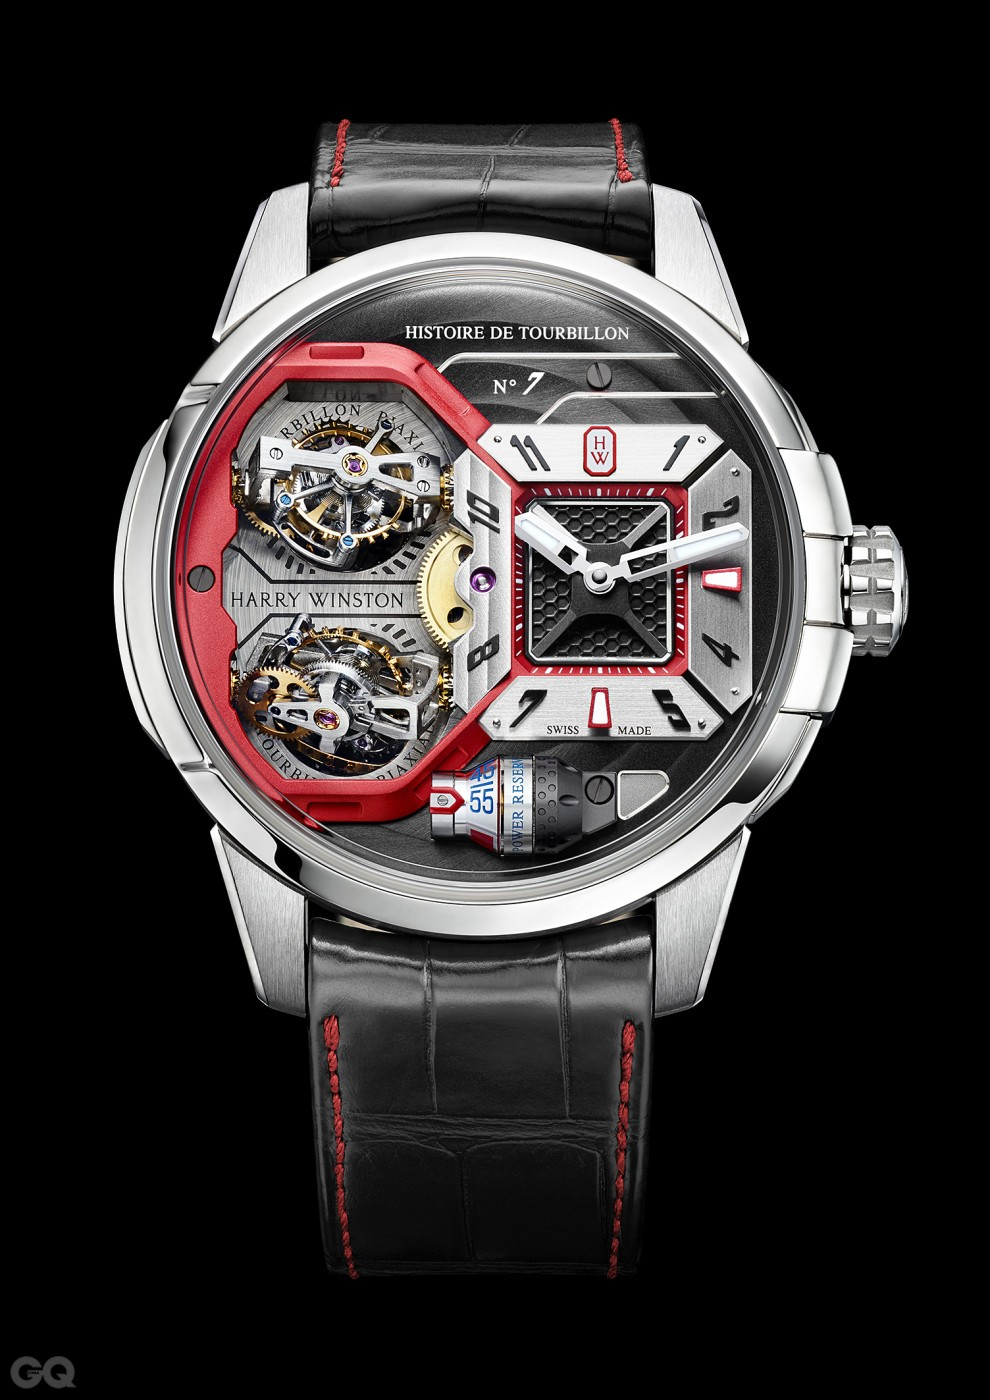 HW_Histoire_de_Tourbillon_7_Red_face_blackBG_HD